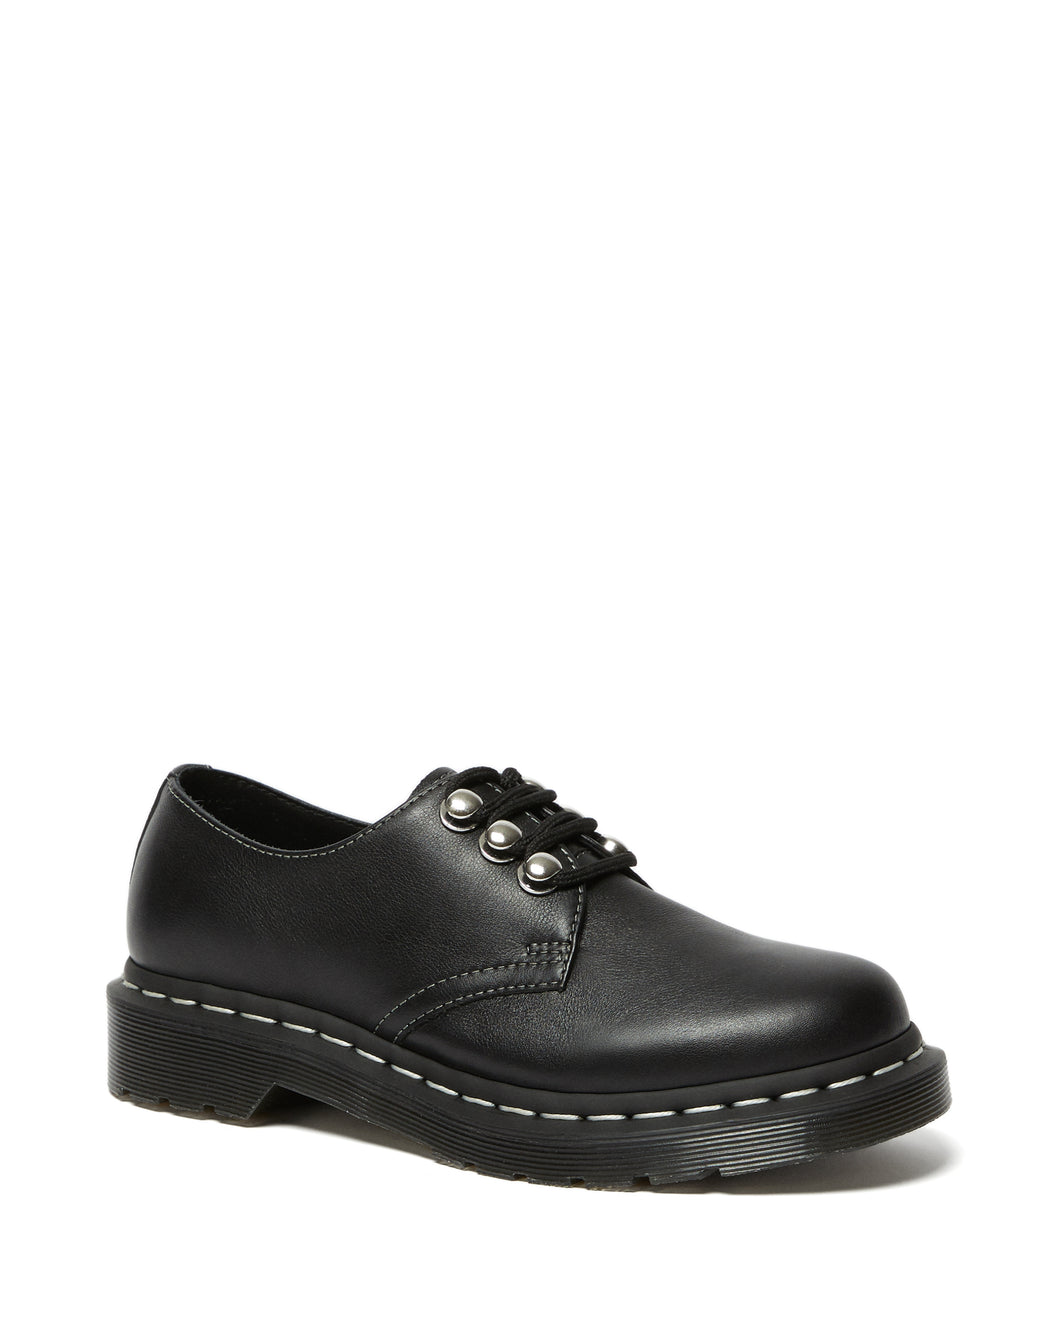 1461 Women's Hardware Leather Oxford Shoe (blk)